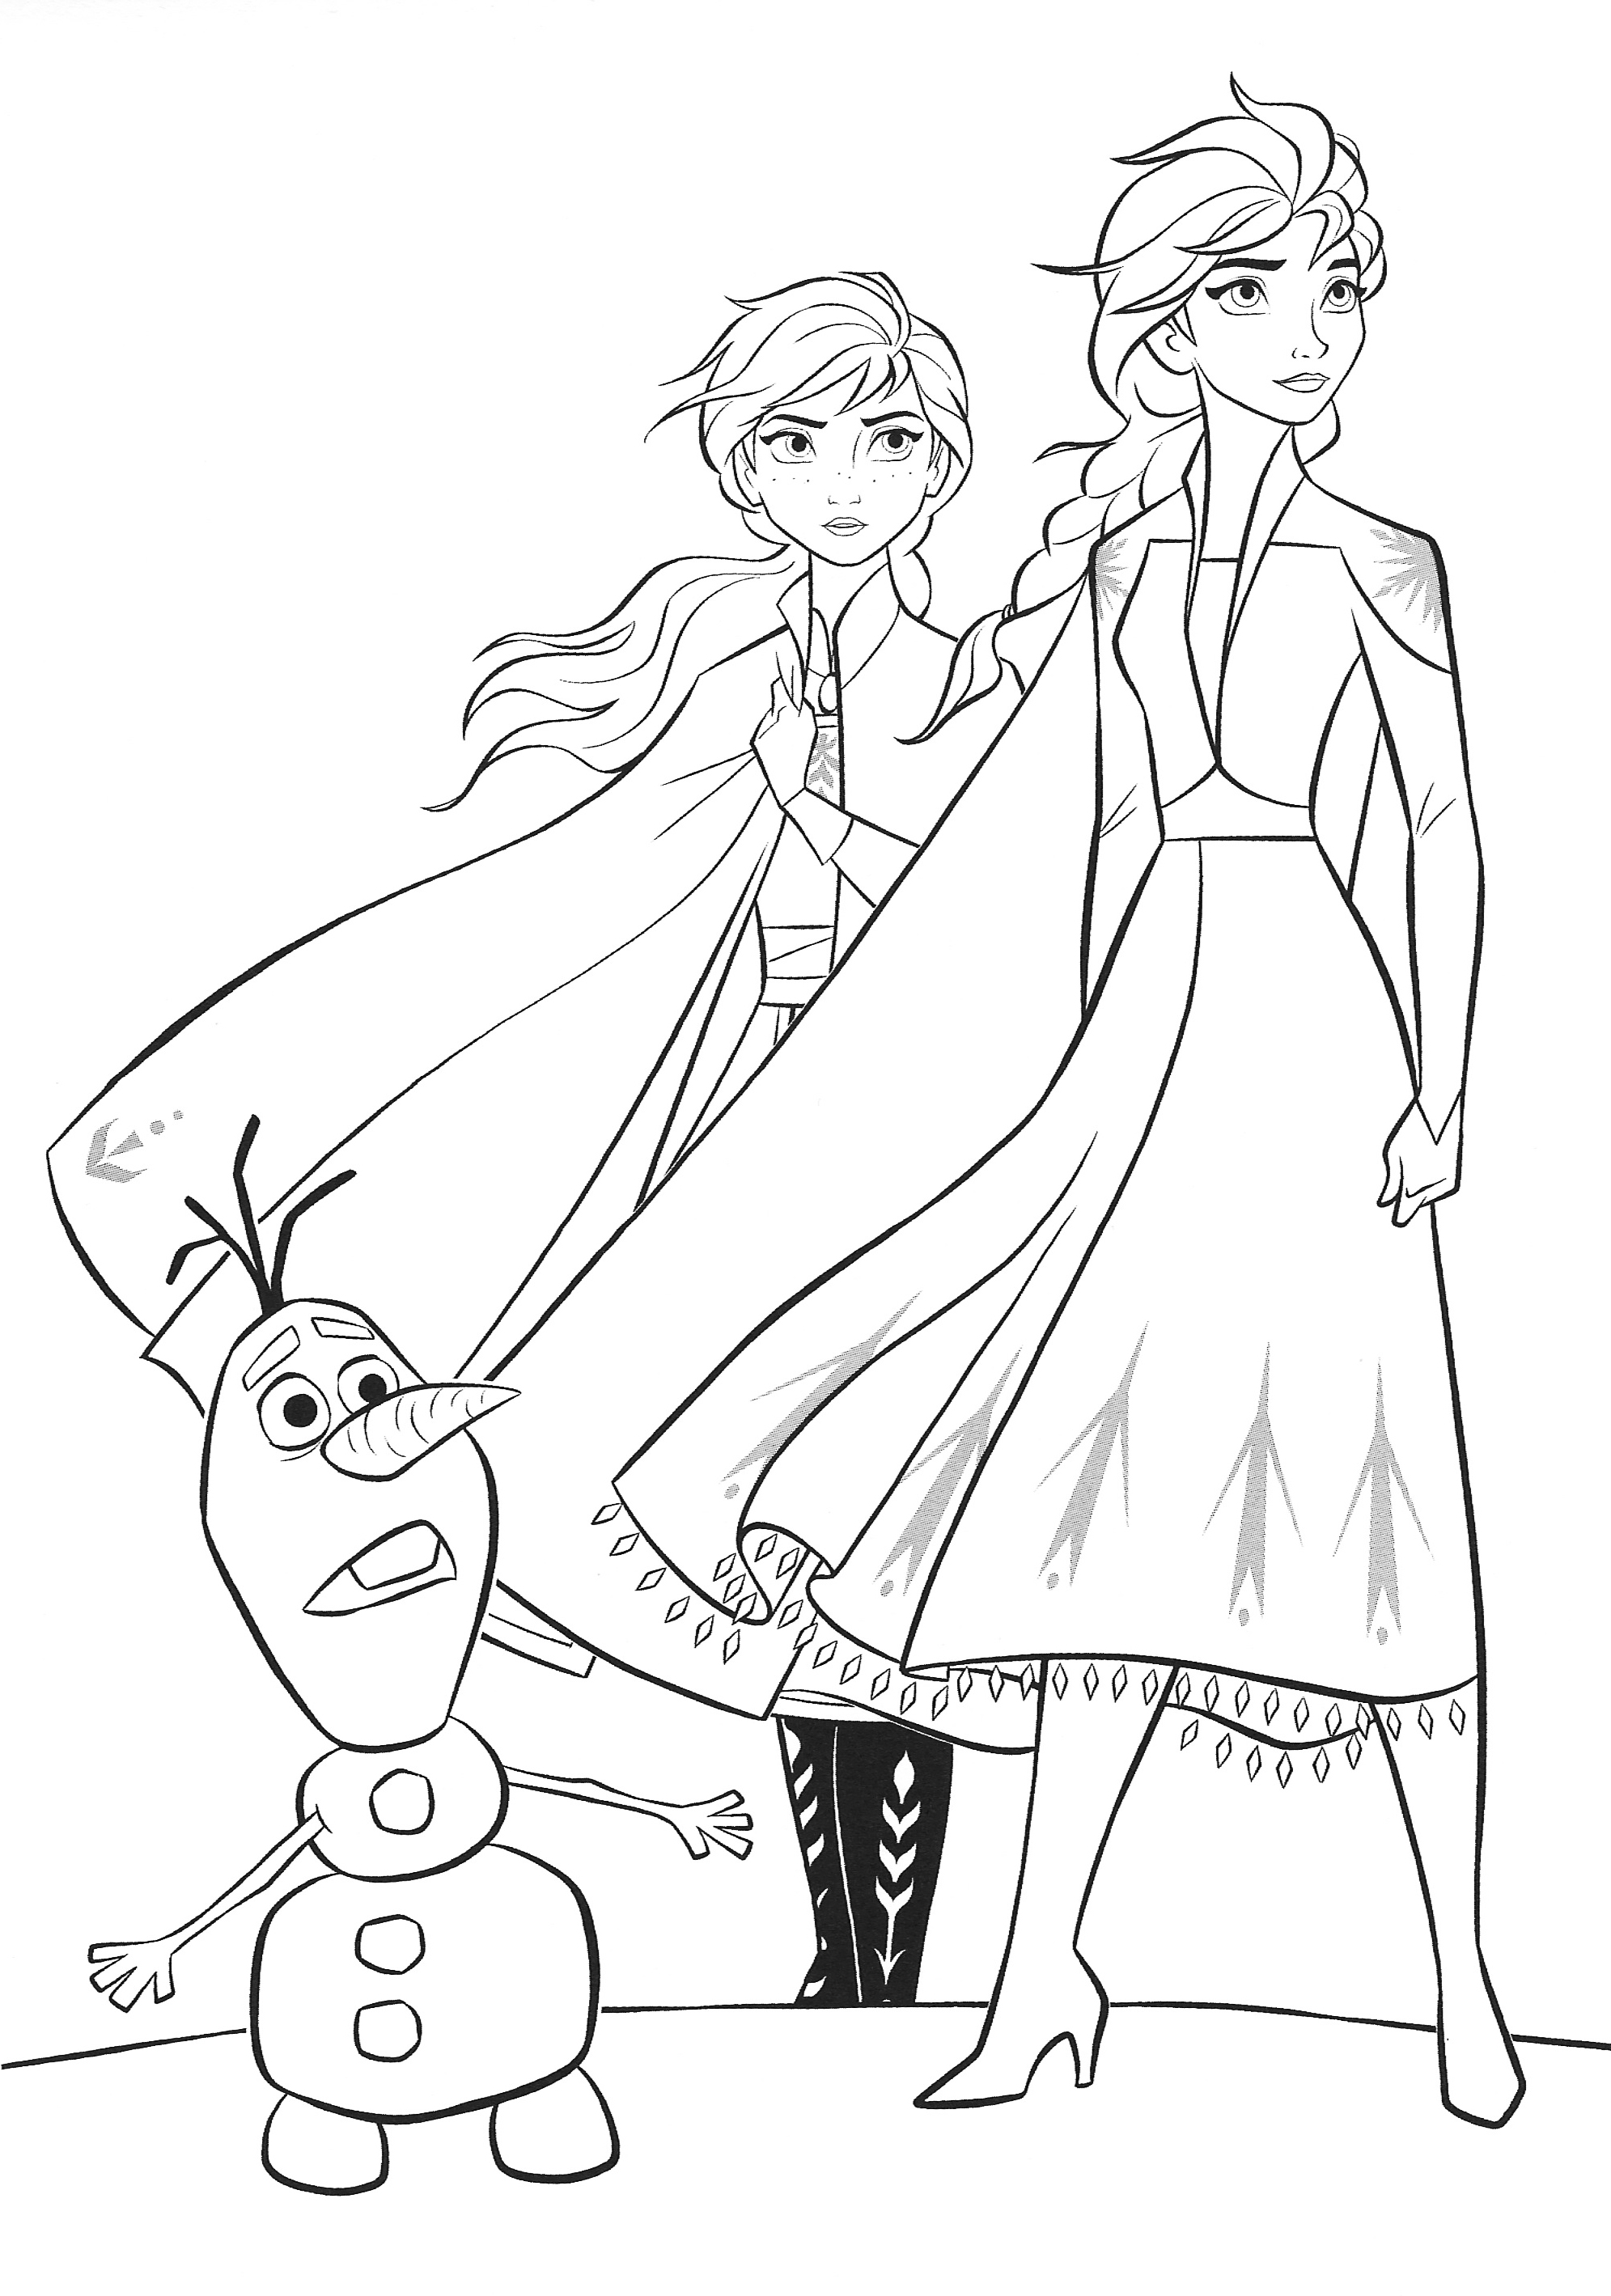 Frozen 2 Elsa And Anna Coloring Pages - YouLoveIt.com ...